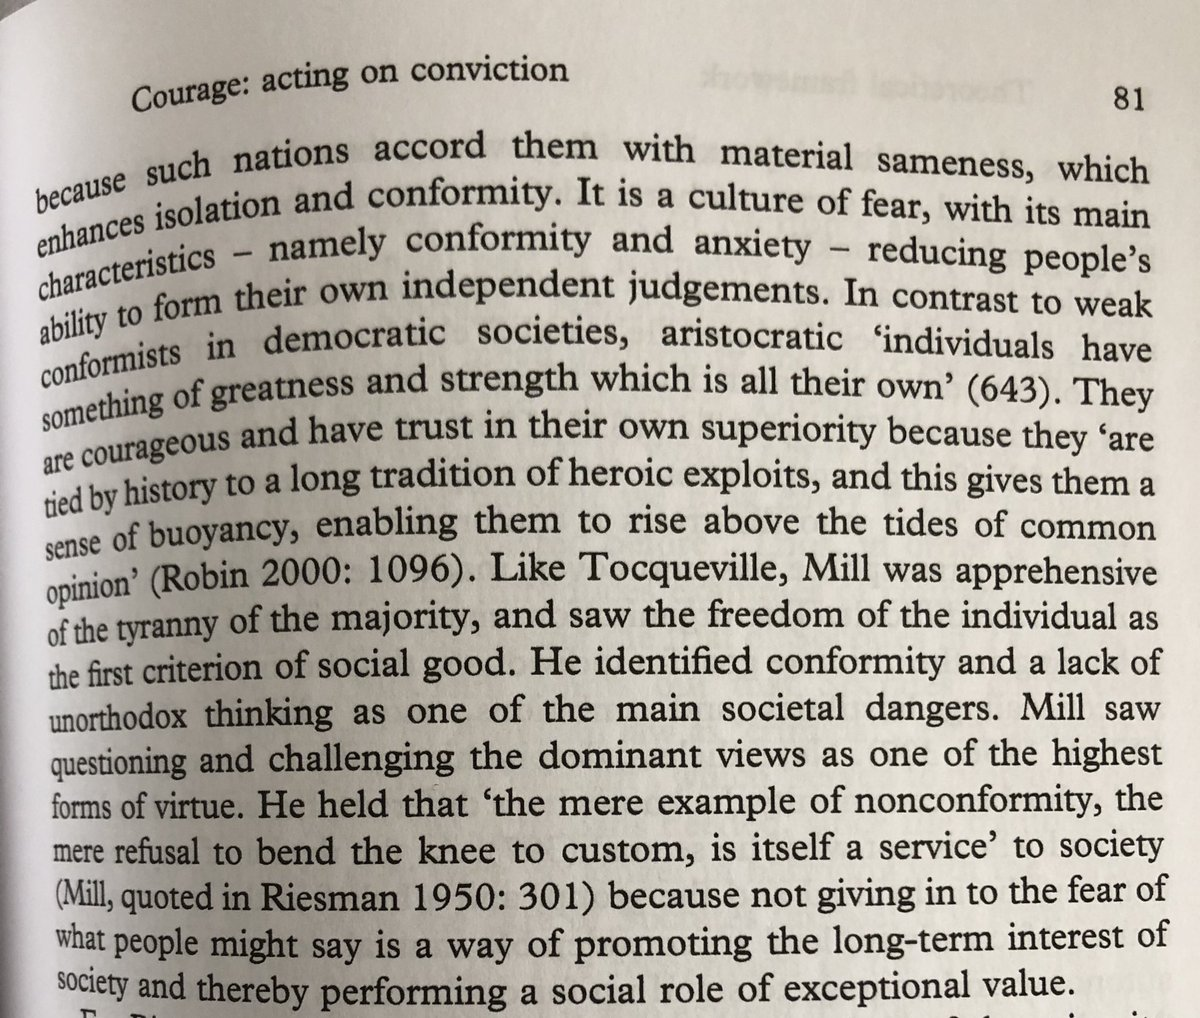 Freedom, anxiety, fear and compliance - the tense string of terms, brought up by Misztal (2007), urging to rethink #creativity #courage, virtues shaped by #intellectuals for #publicgood. More than important in modern #highered @DrLizJackson @charles_mathies